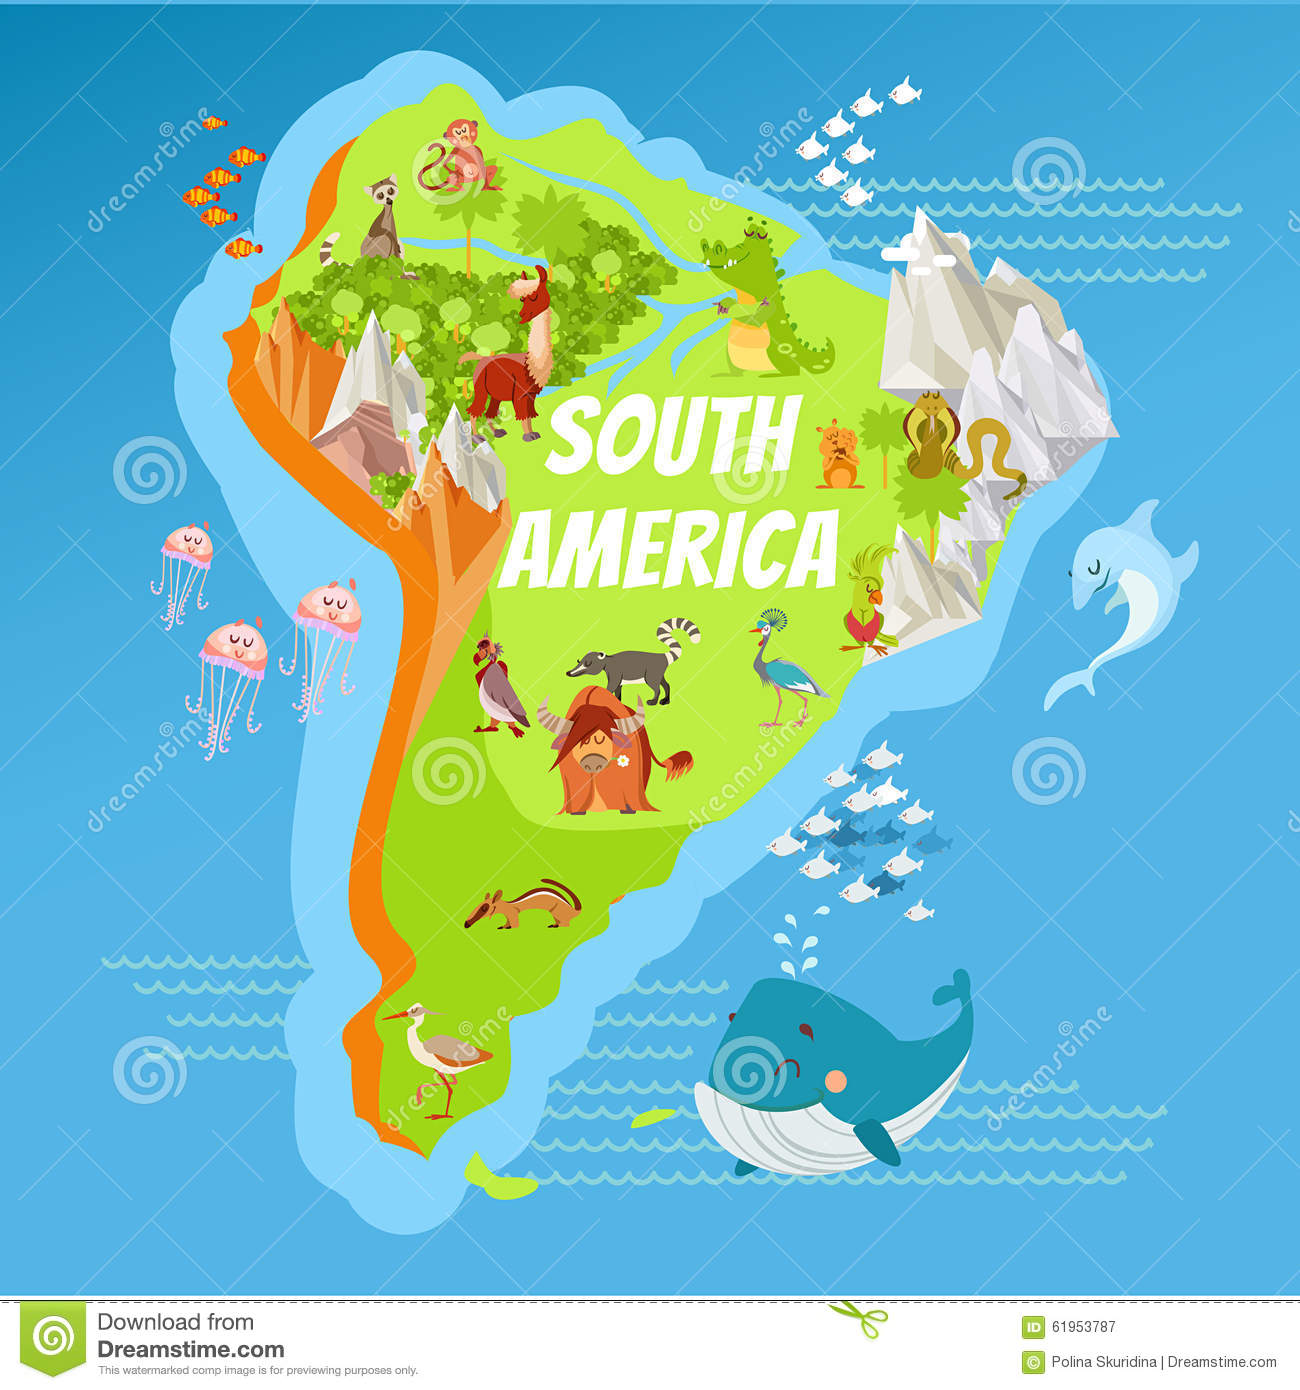 Mapadeuruguay De Todo Un Poco Pinterest America And Uruguay Geo - Us map with south